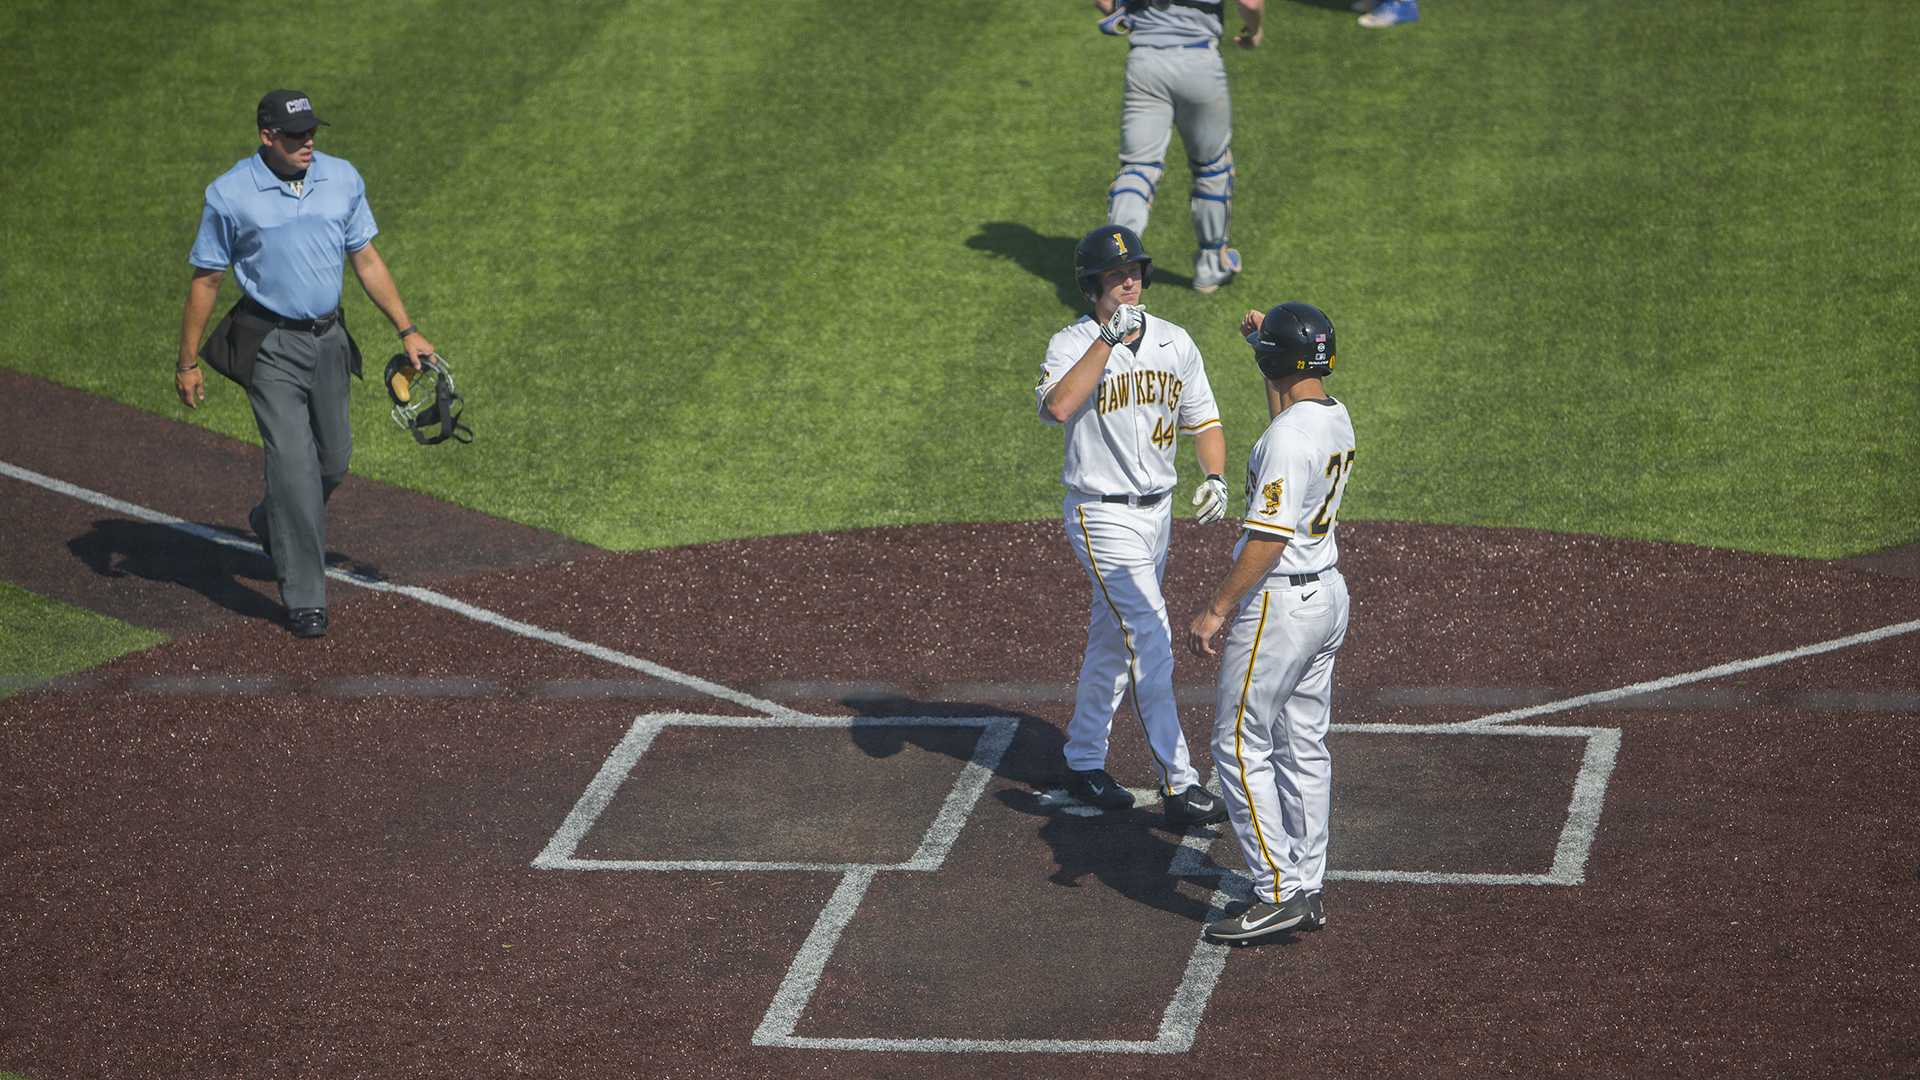 Iowa outfielder Robert Neustrom celebrates a run during the Iowa/Ontario baseball game at Duane Banks Field on Saturday, Sept. 23, 2017. The Hawkeyes defeated the Blue Jays, 17-2. (Lily Smith/The Daily Iowan)